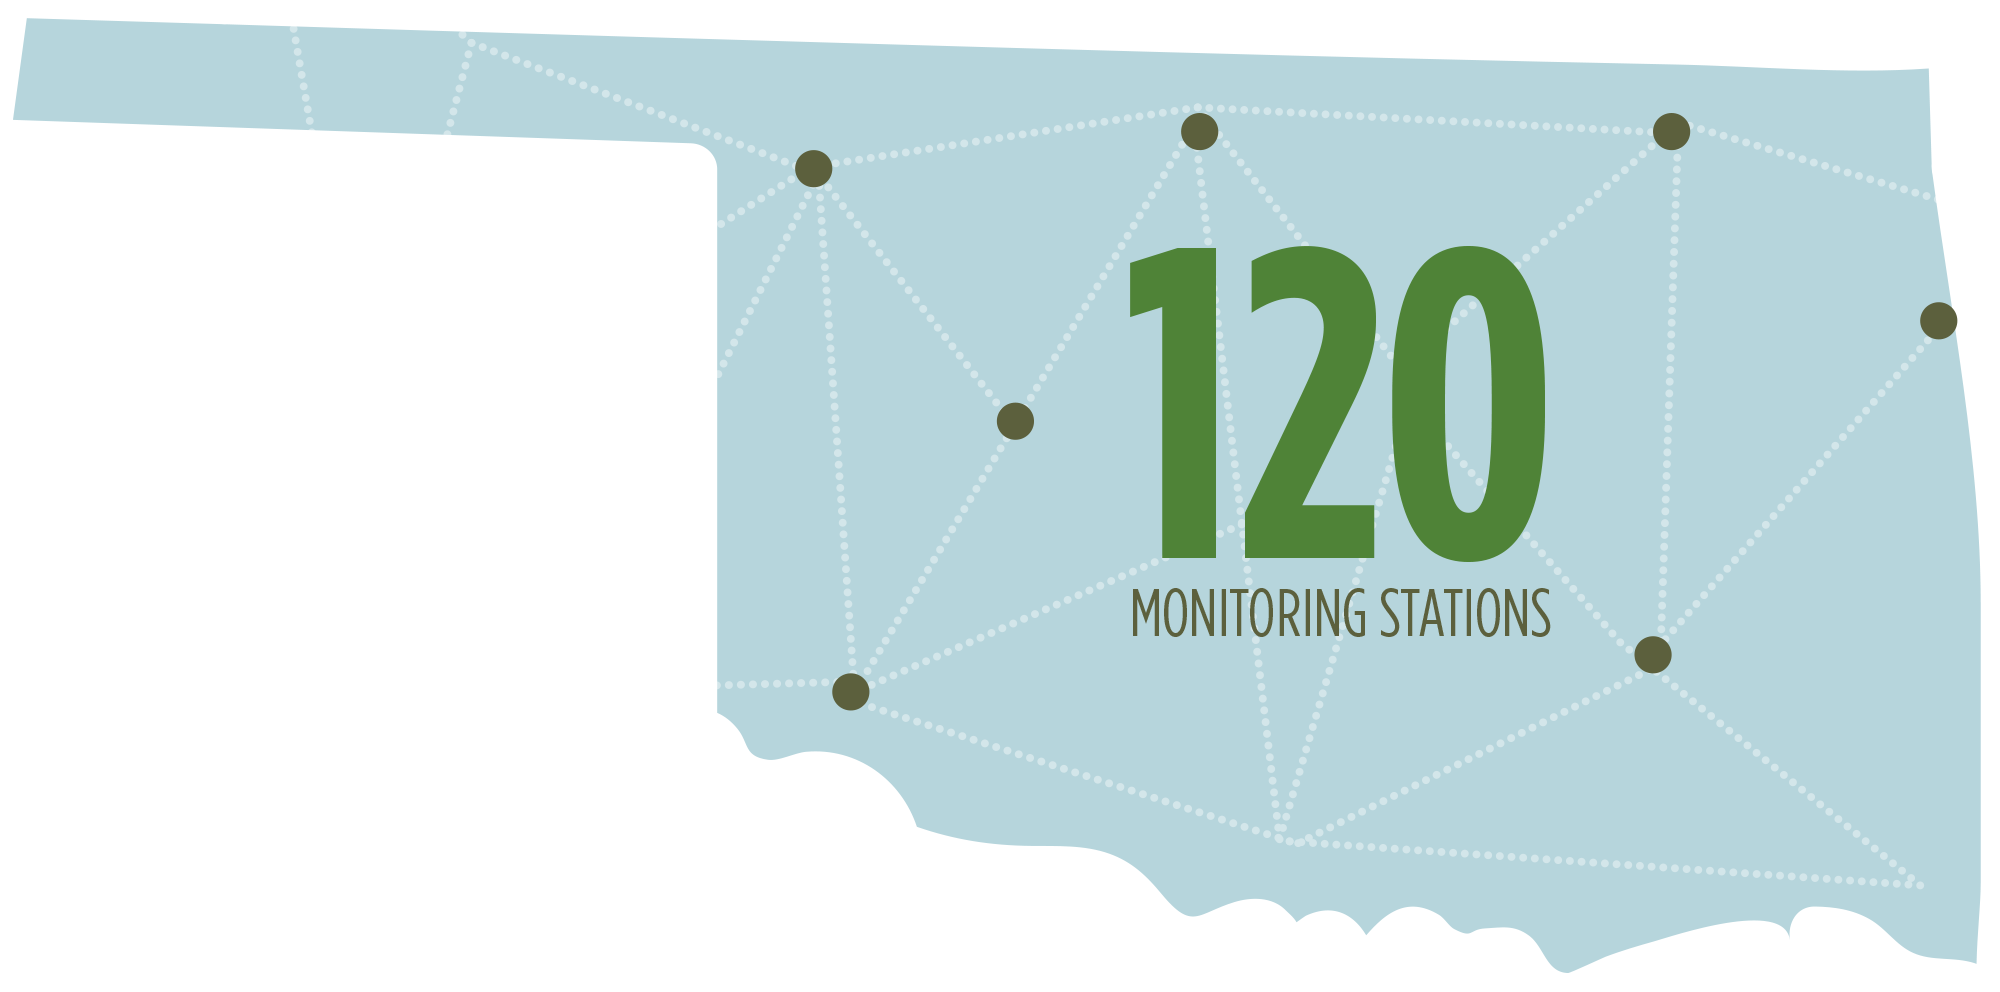 Map showing 120 Mesonet weather monitoring stations across the state of Oklahoma.